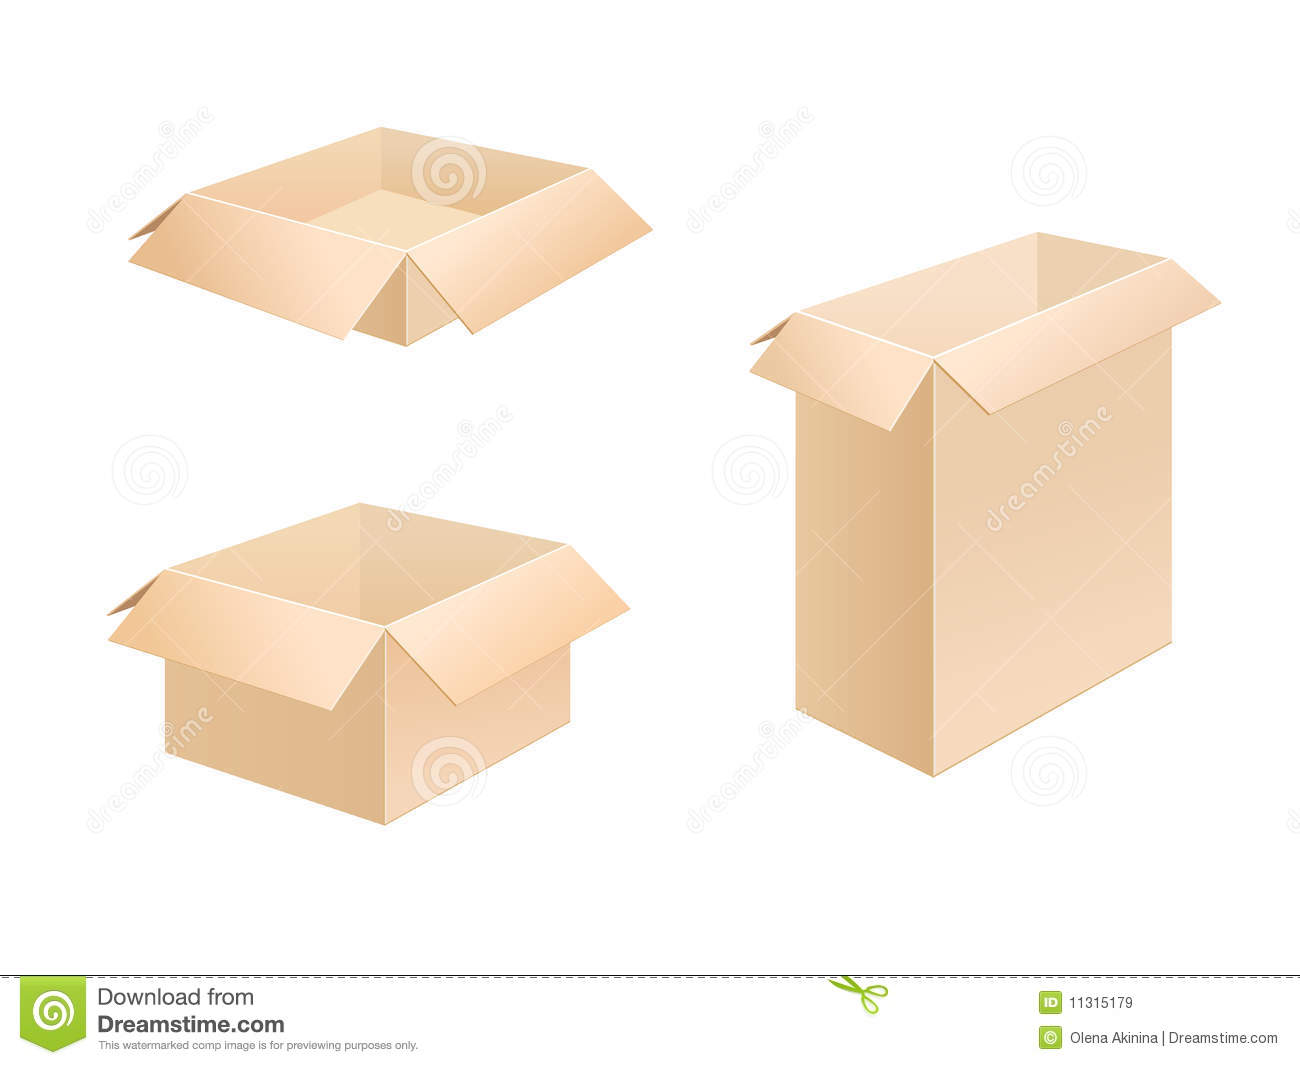 Crimped_cardboard_boxes